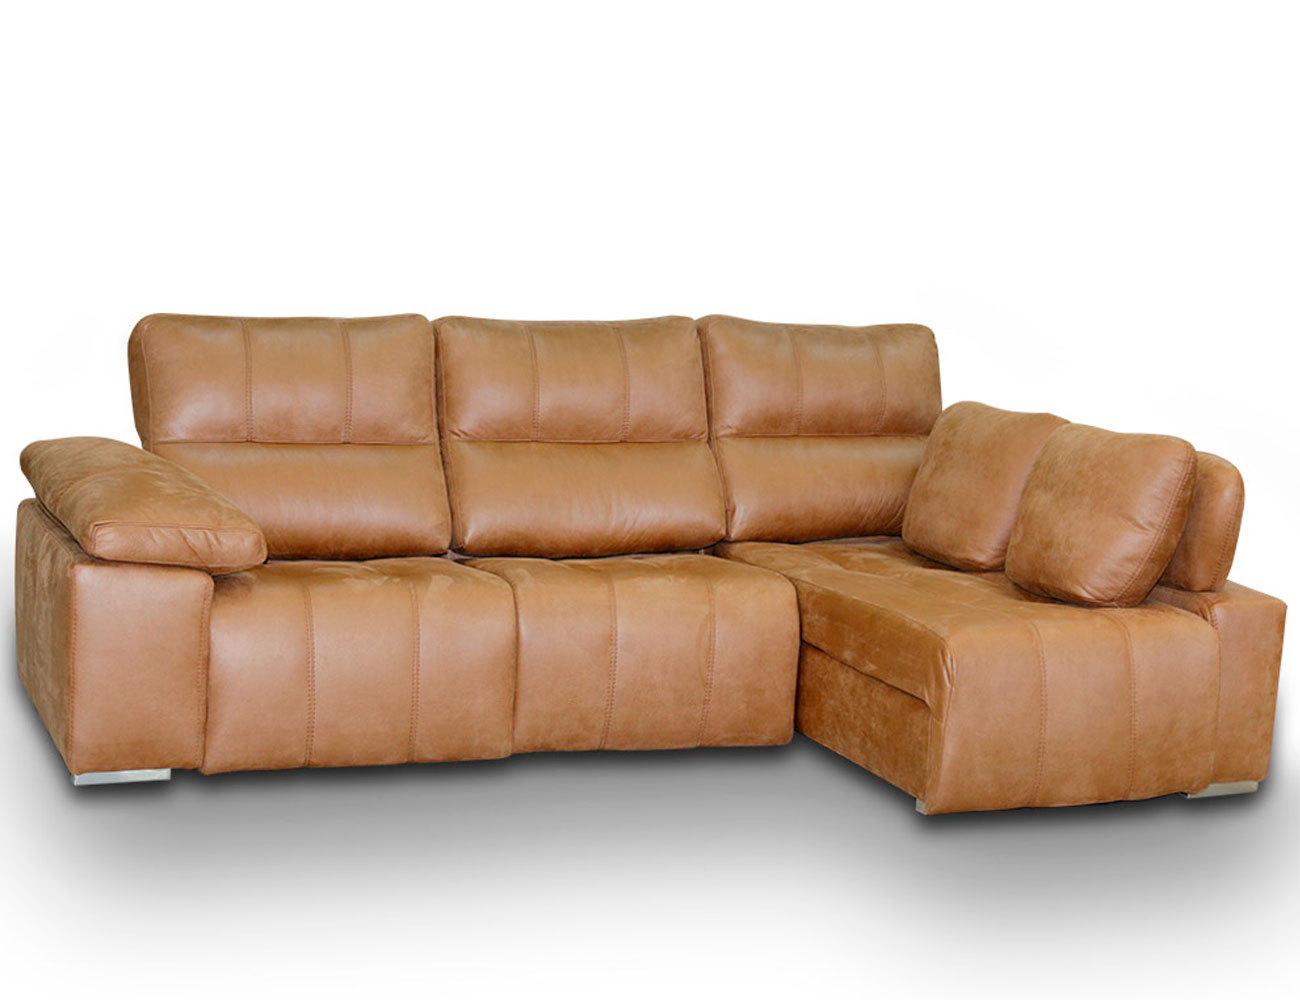 Sofa chaiselongue relax 2 motores anti manchas23